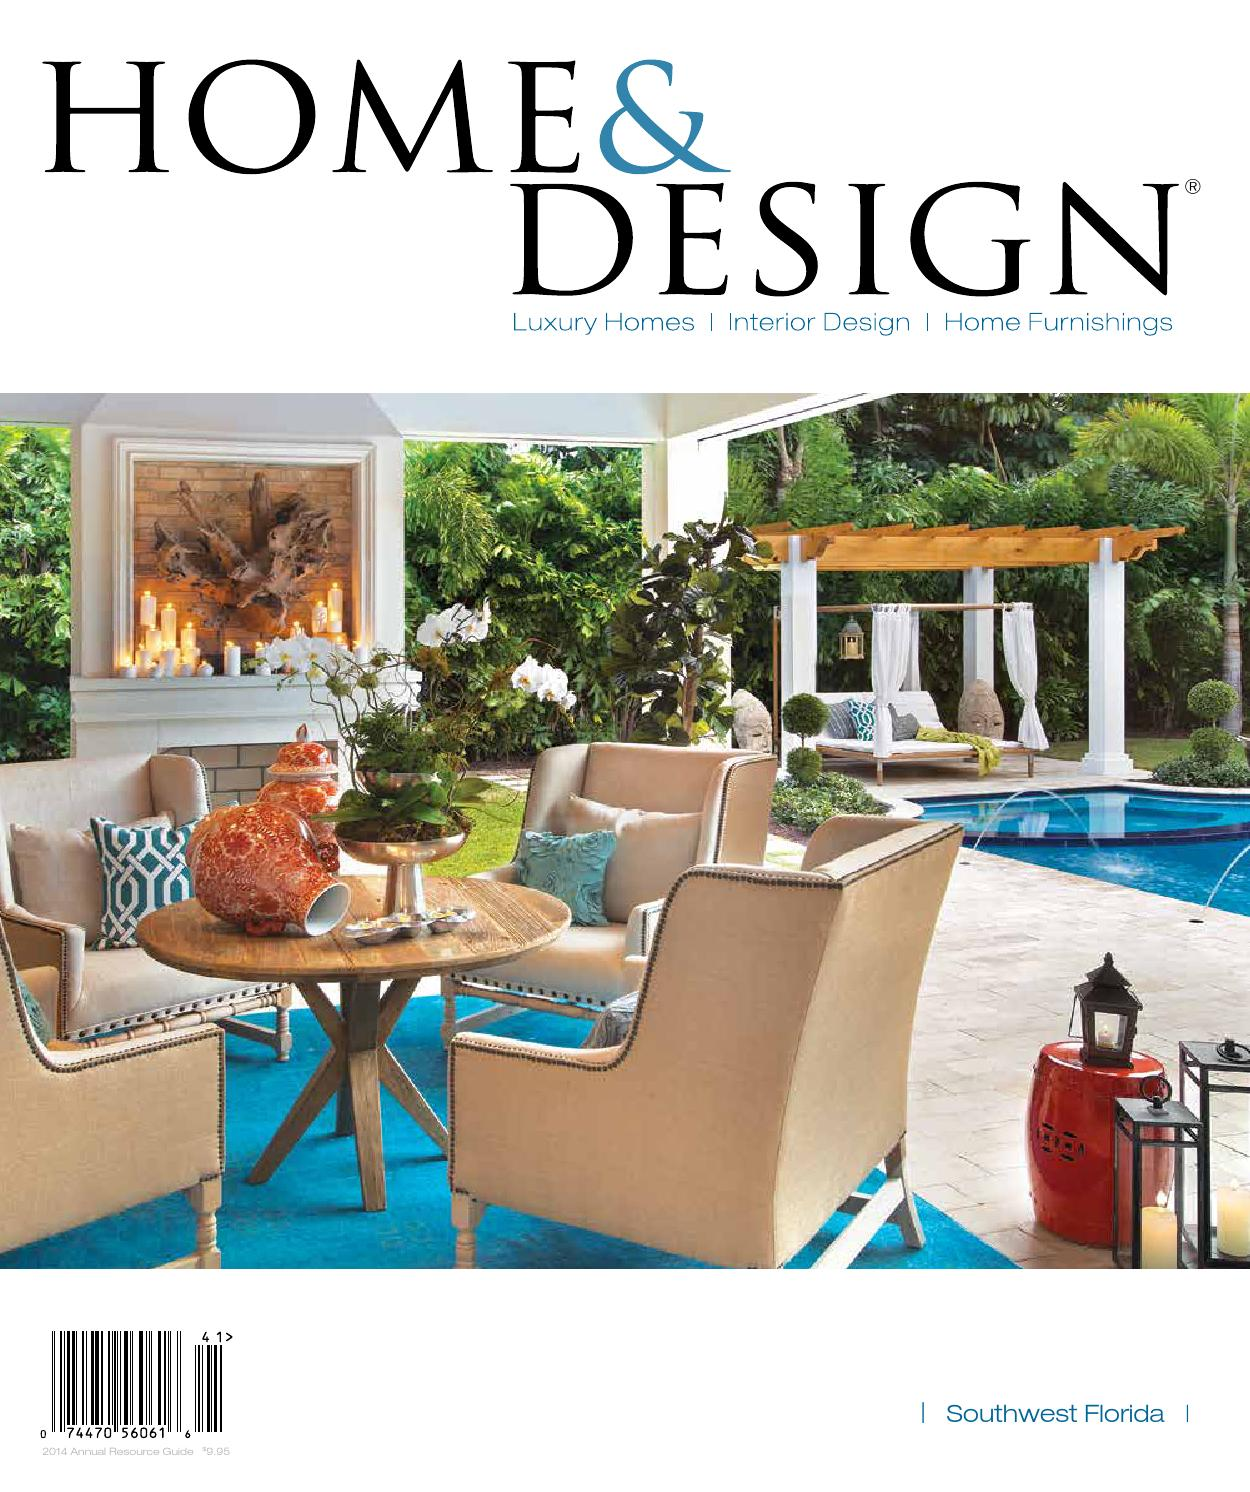 Home Design Magazine home & design magazine | annual resource guide 2014 | southwest